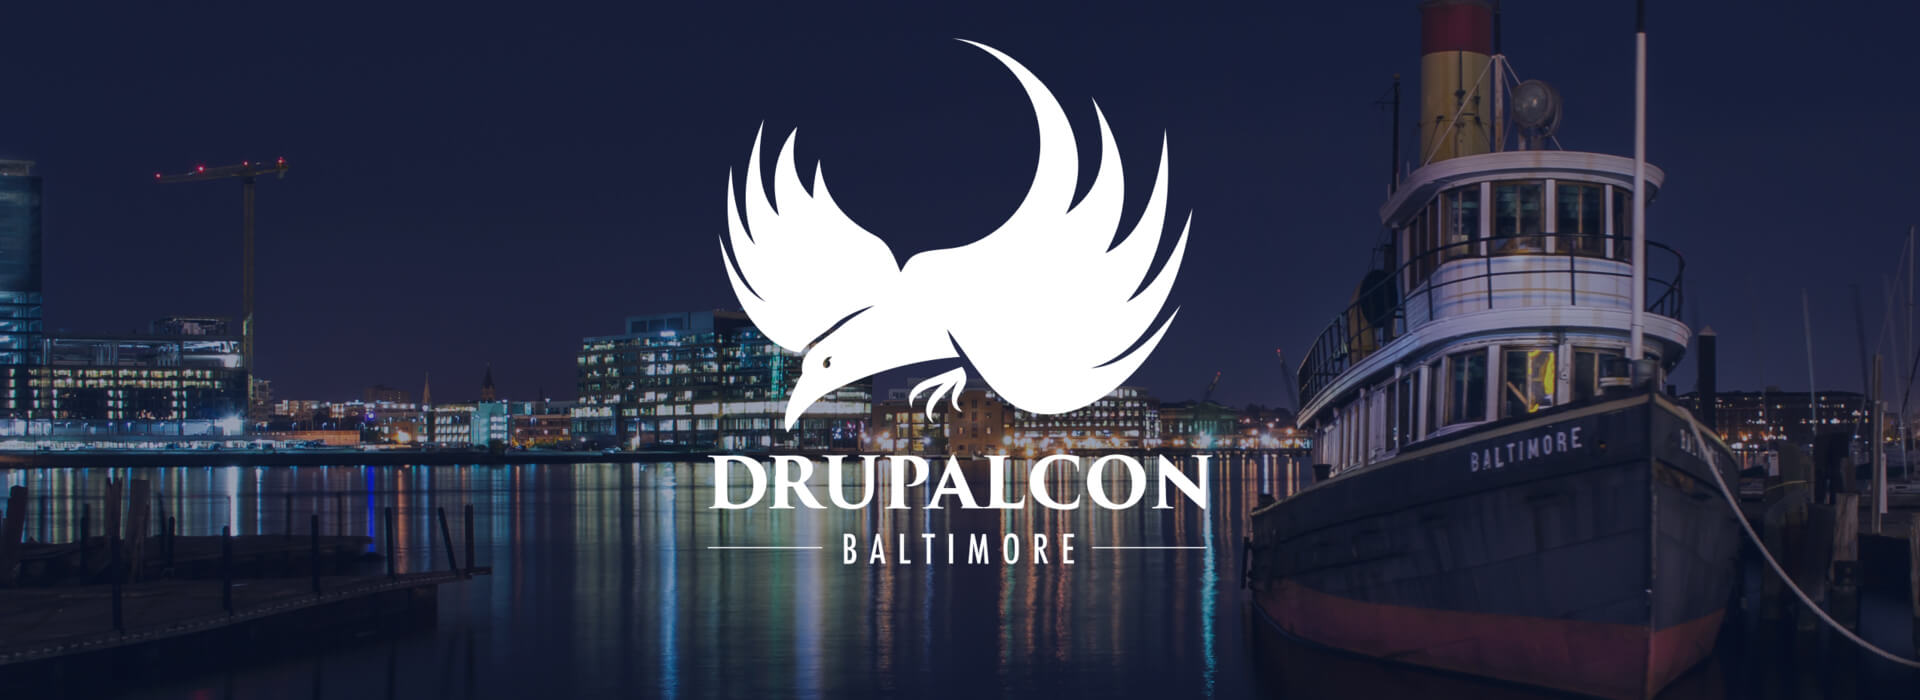 DrupalCon in Baltimore